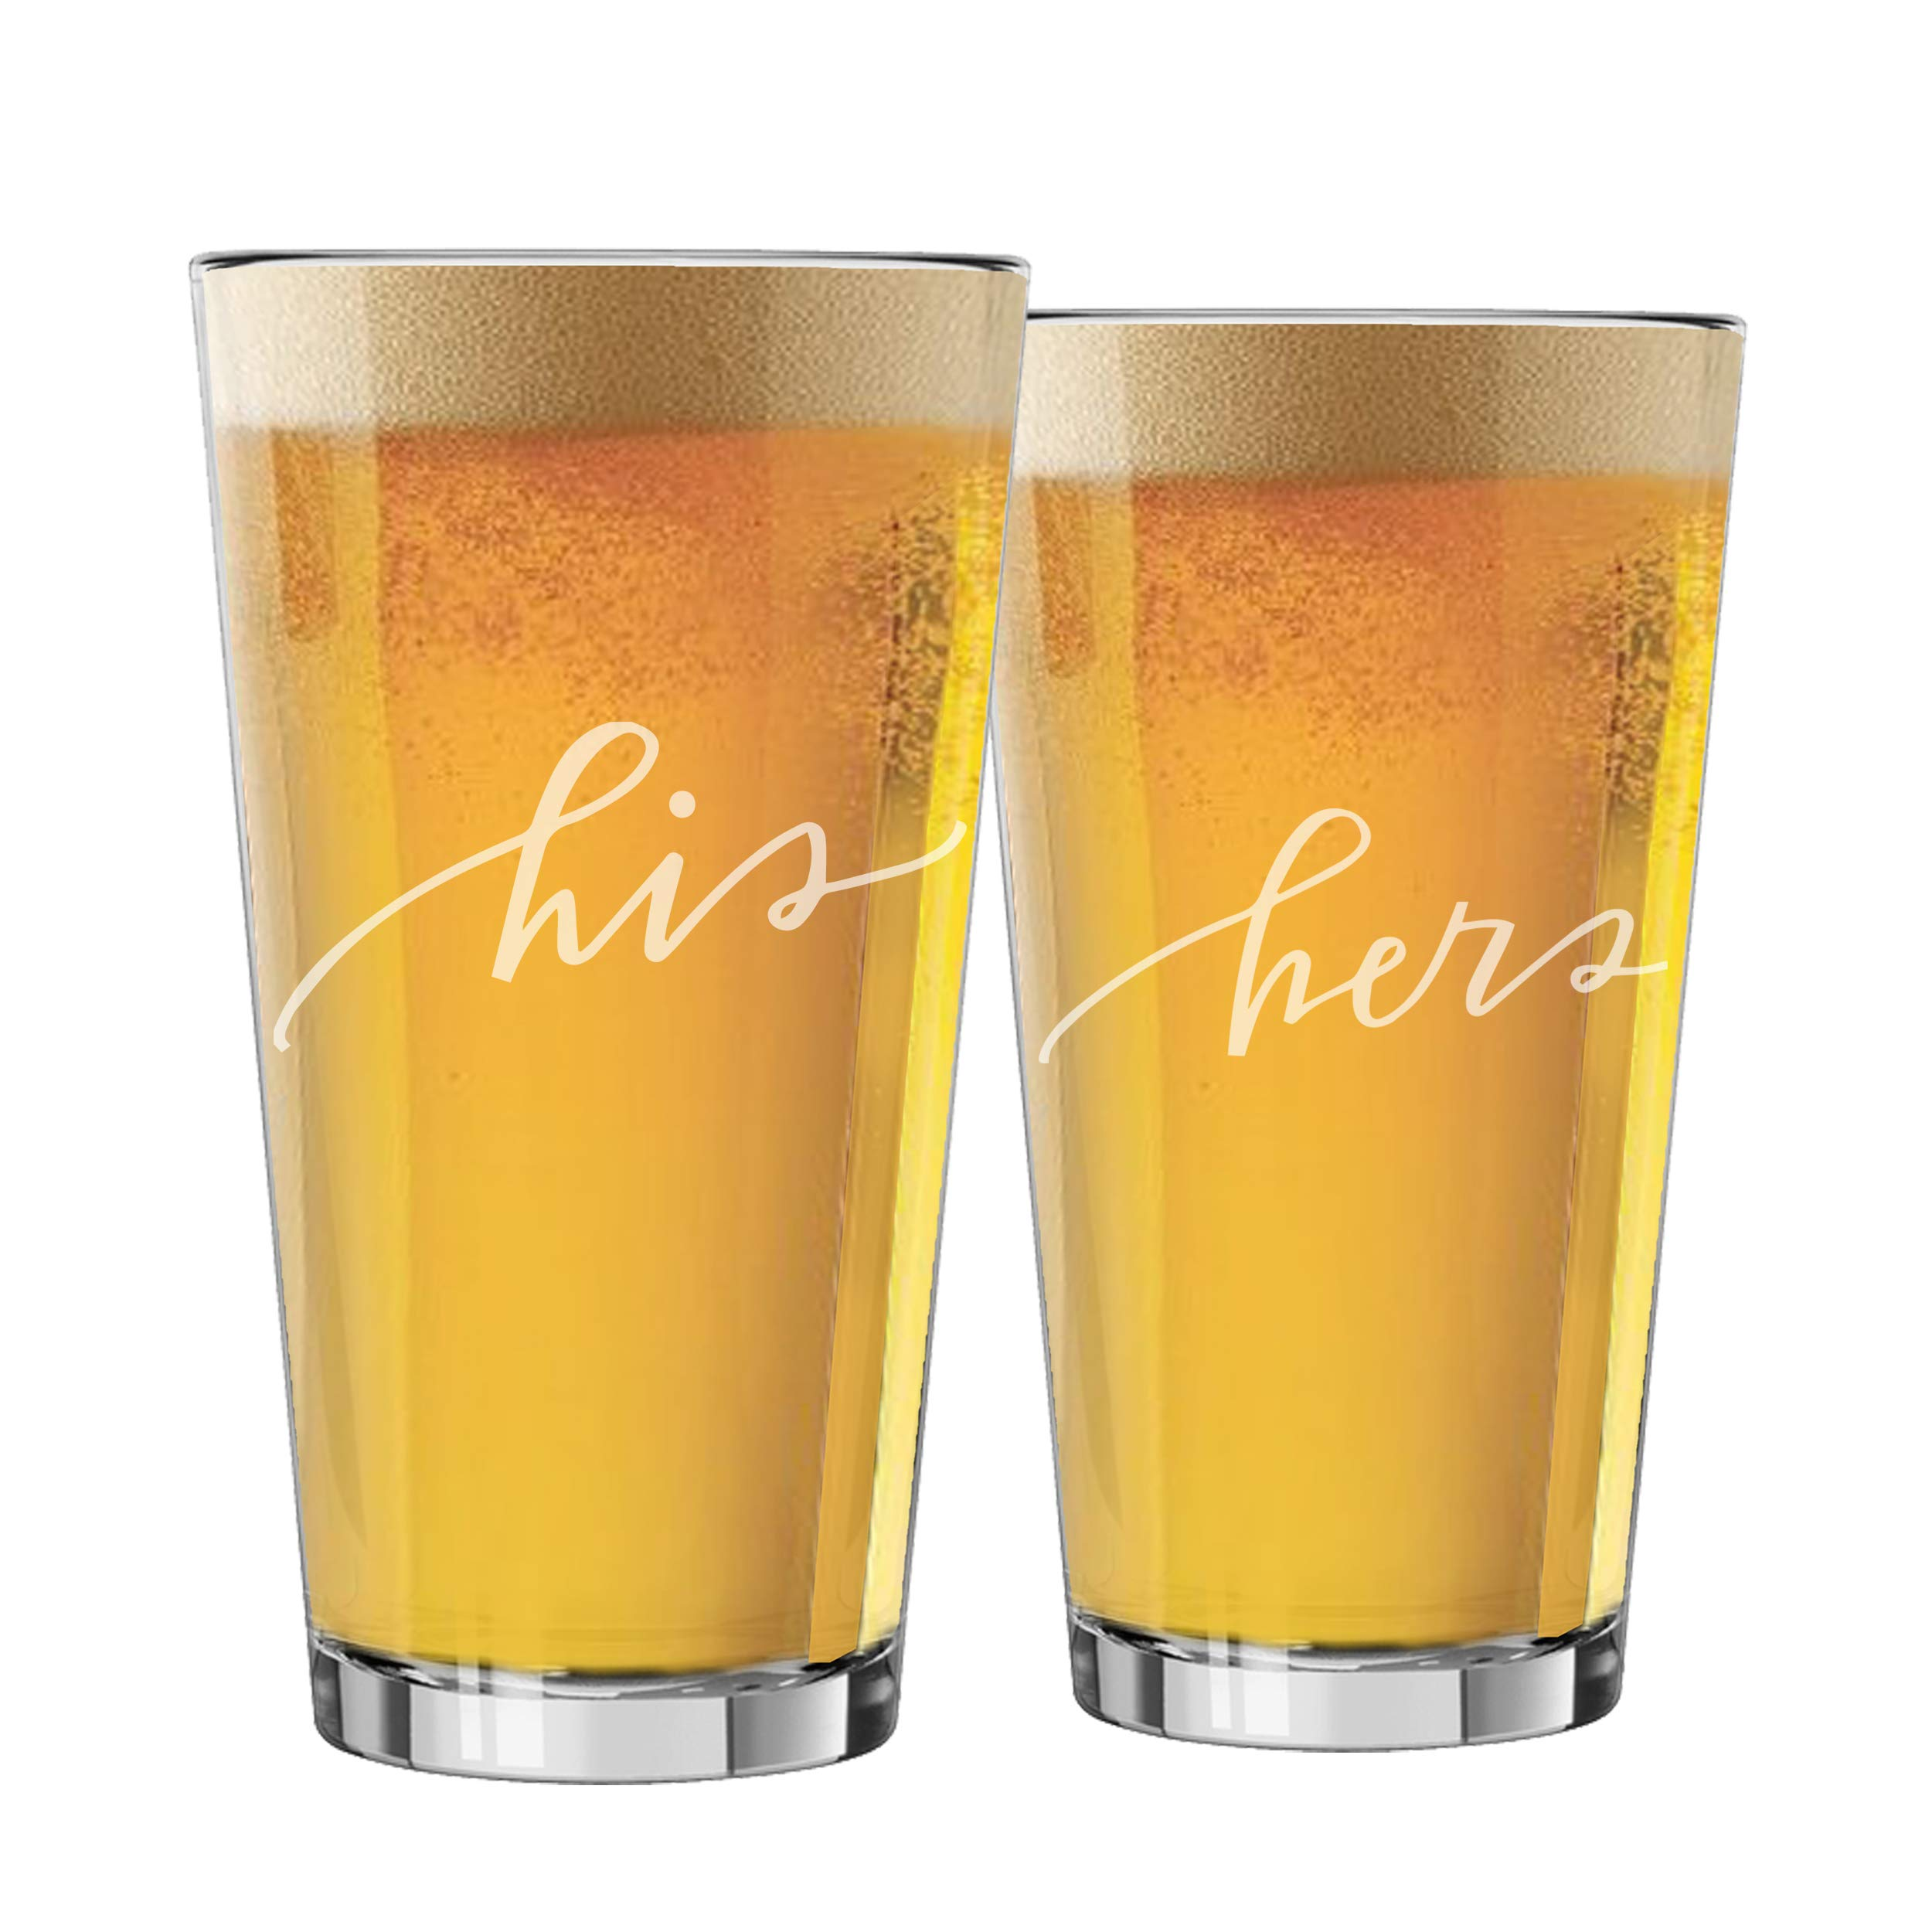 My Personal Memories Mr, Mrs, His, and Hers Beer Pint Glasses Gift Set of 2 for Engagement, Wedding, Anniversary, and Couples (His and Hers Script - 16oz)